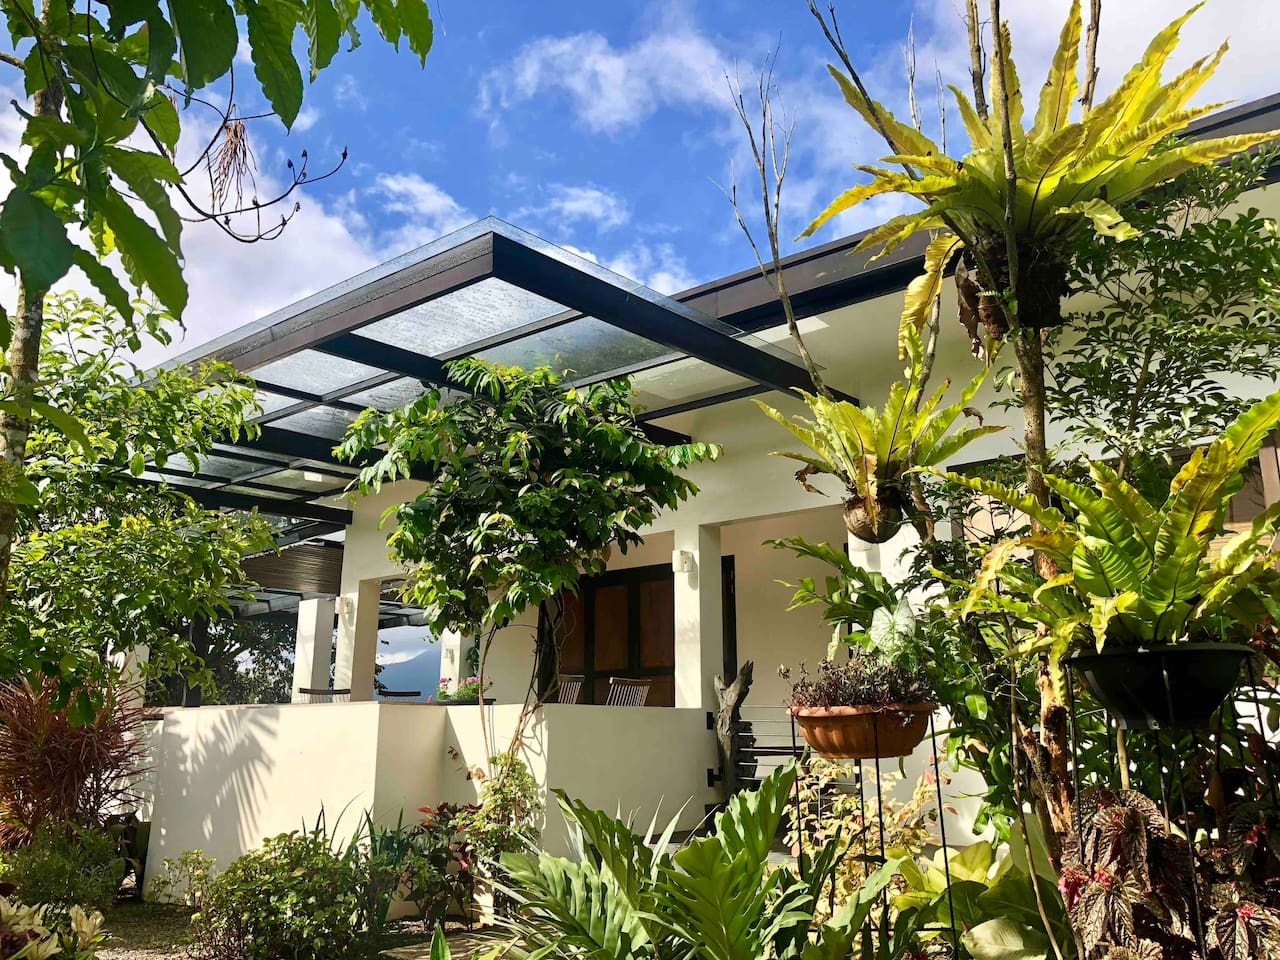 Facade of house. 3 Bedrooms, 2 bathrooms, sala, kitchen and lanai all on one level. Convenient for elderly / handicapped guests.